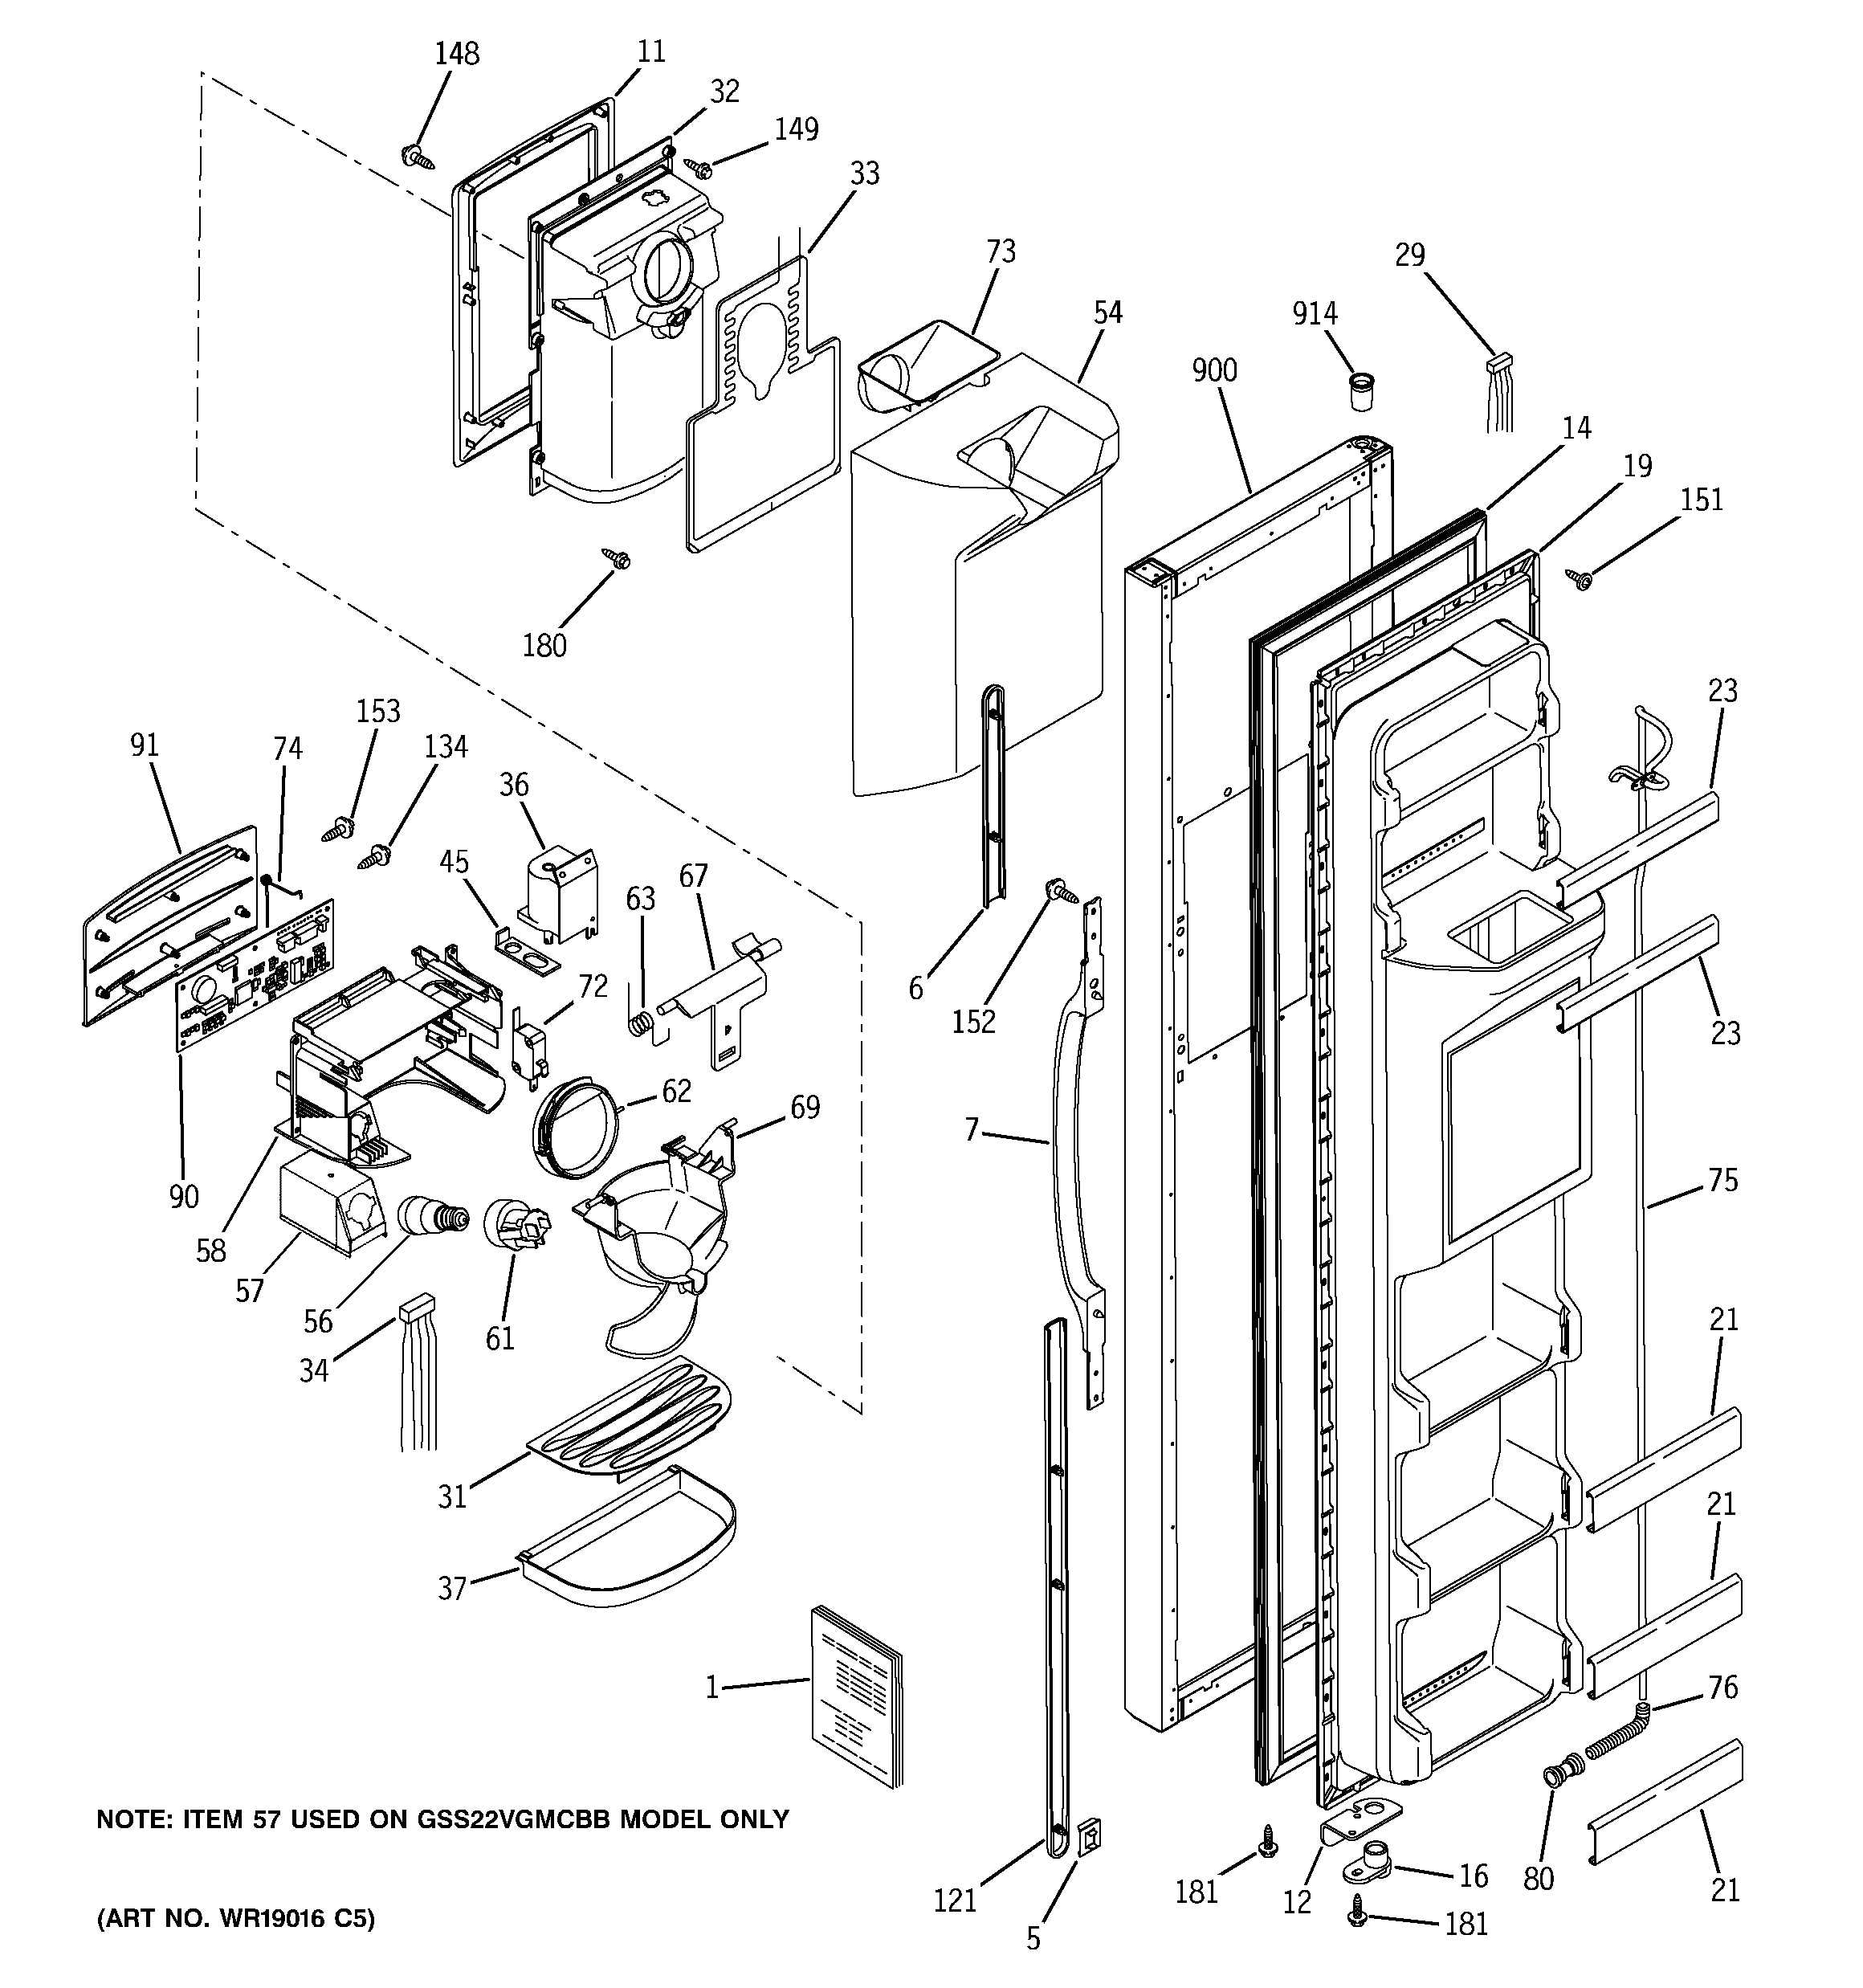 Ge Profile Refrigerator Wiring Diagram from static-cdn.imageservice.cloud